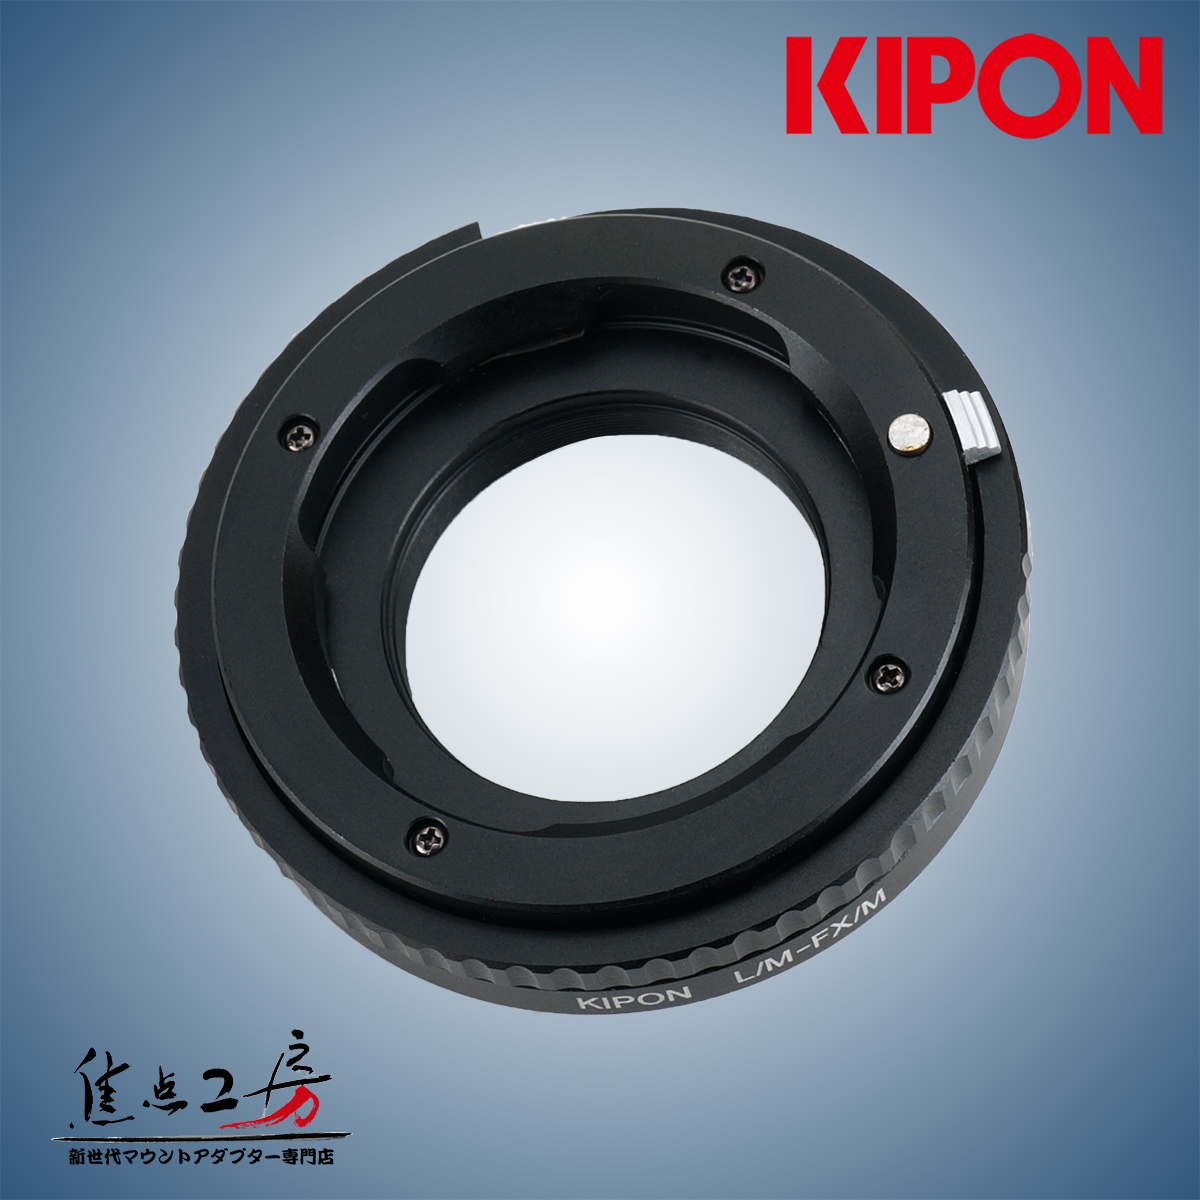 KIPON (kepong) Leica M-mount lenses-Fuji Film X mount adapter with macro and helicoid